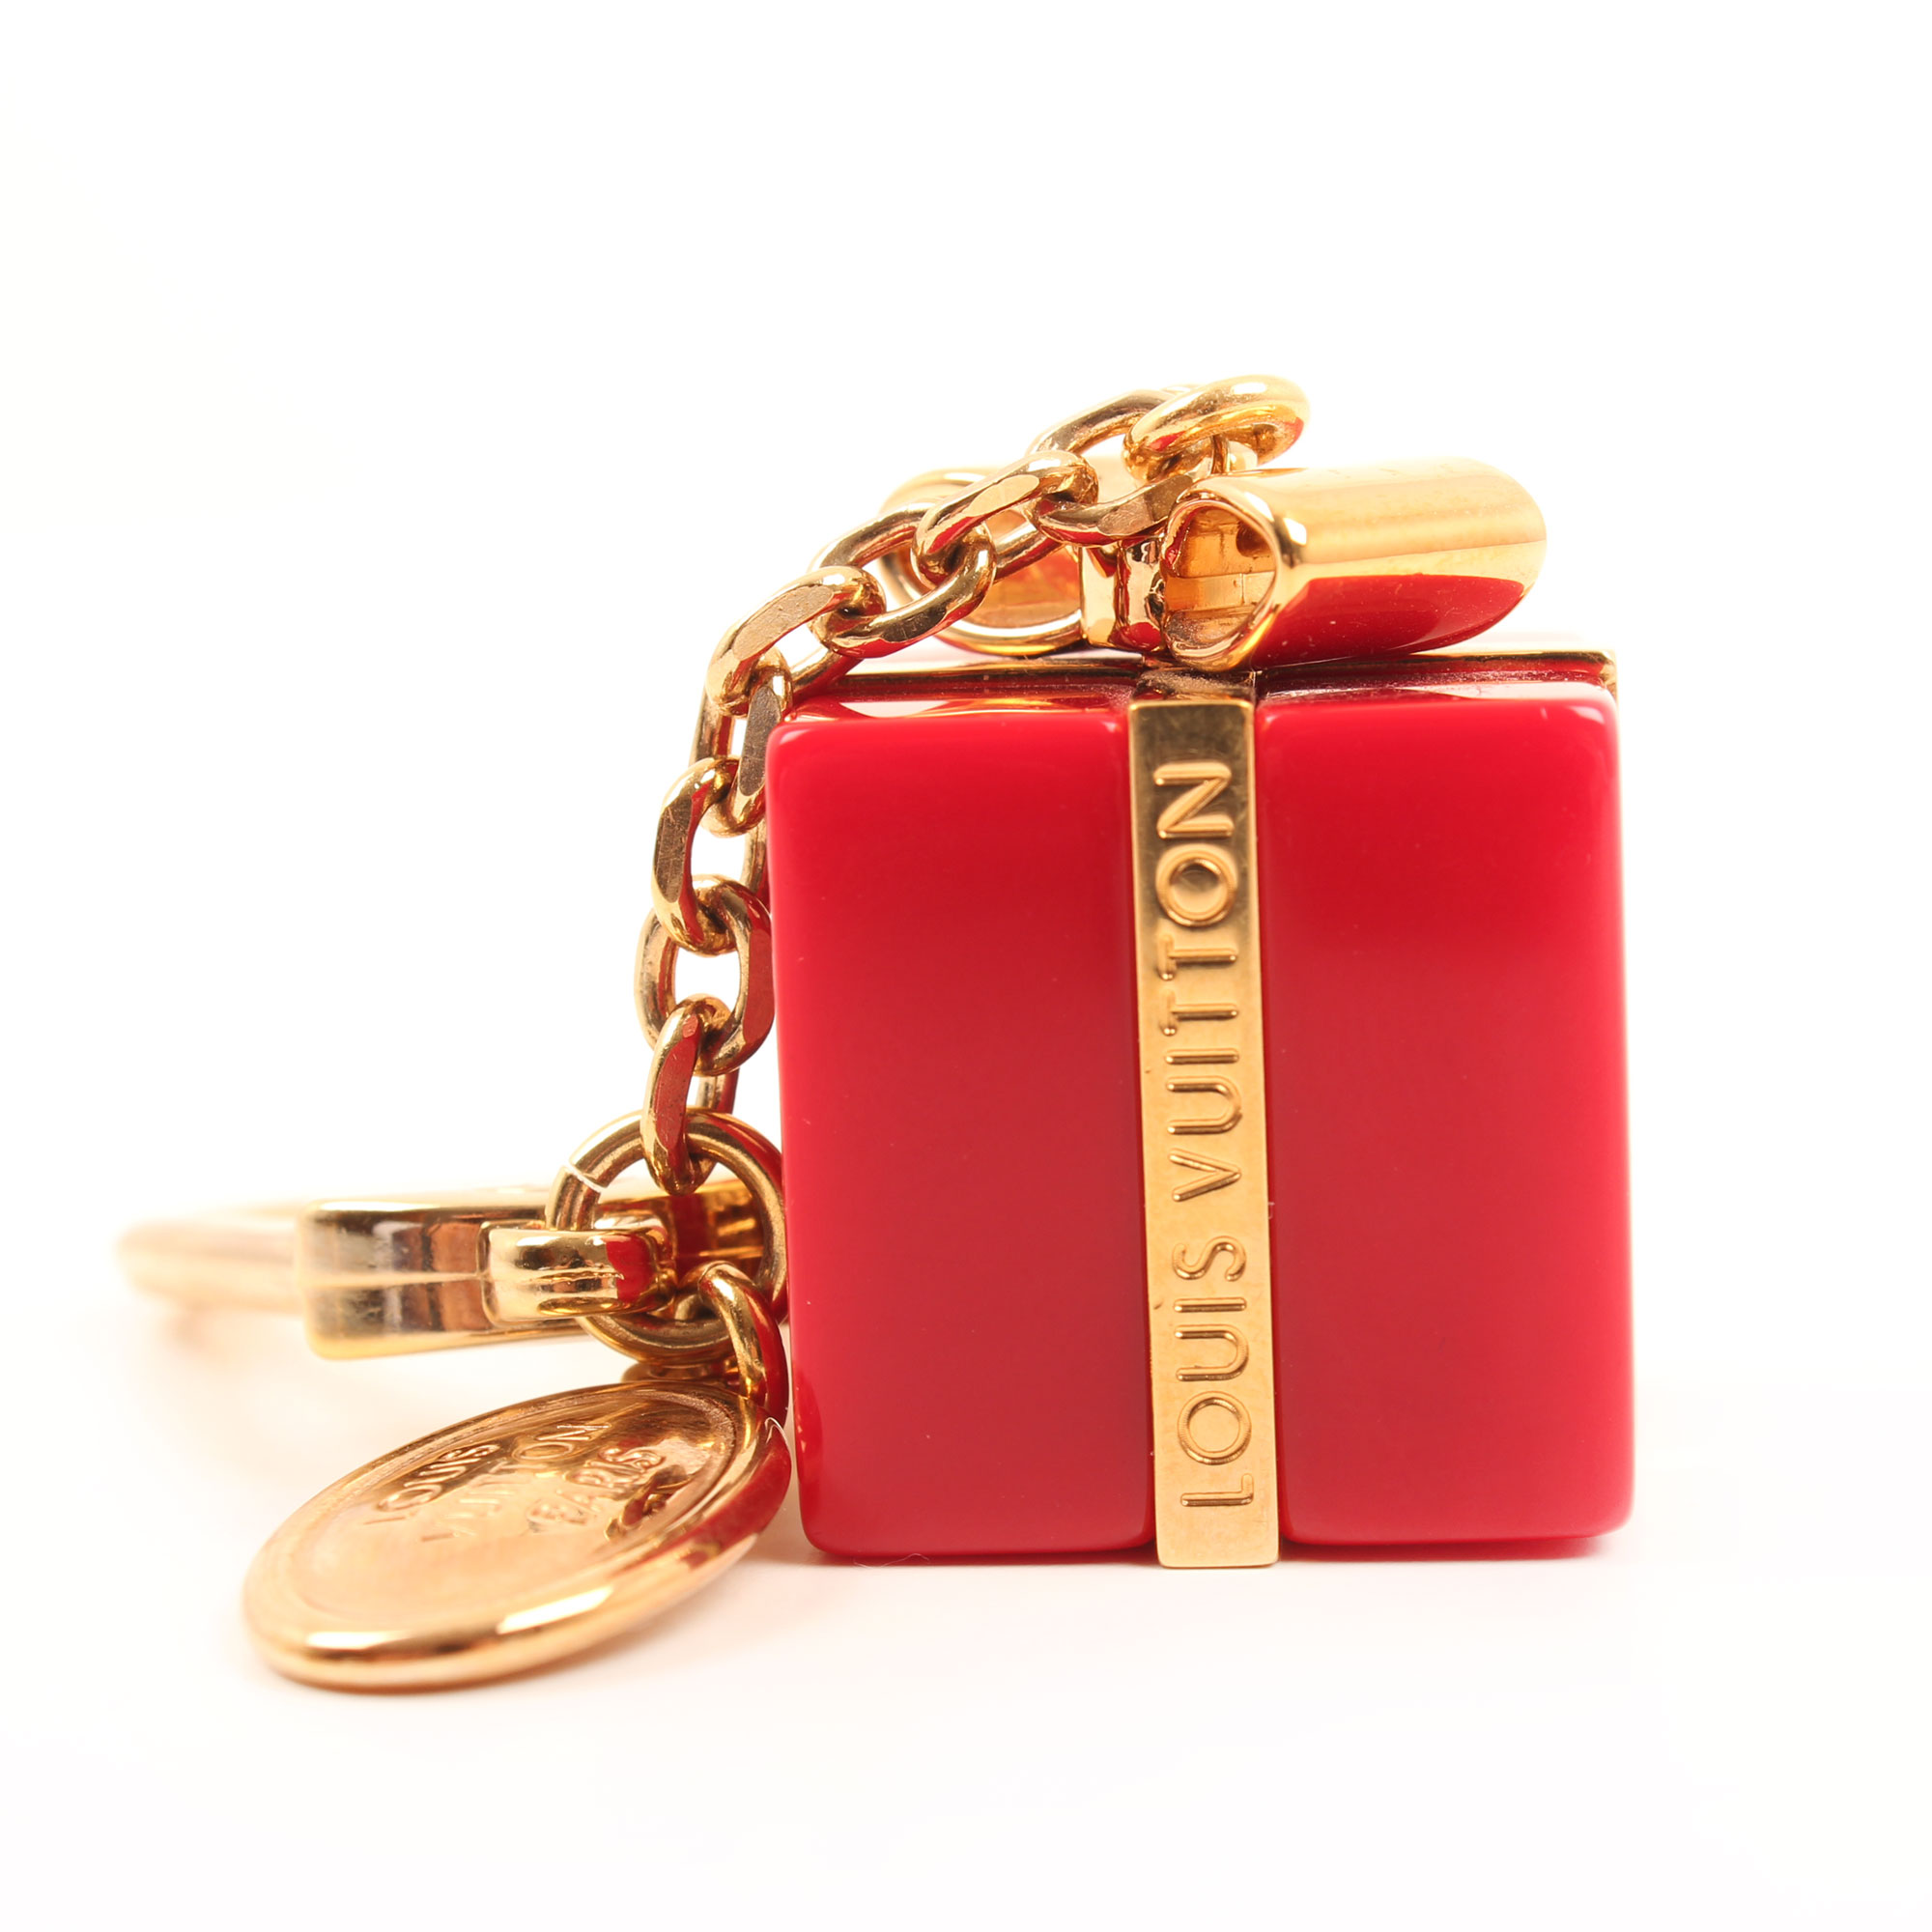 louis vuitton gift box charm bag red golden front